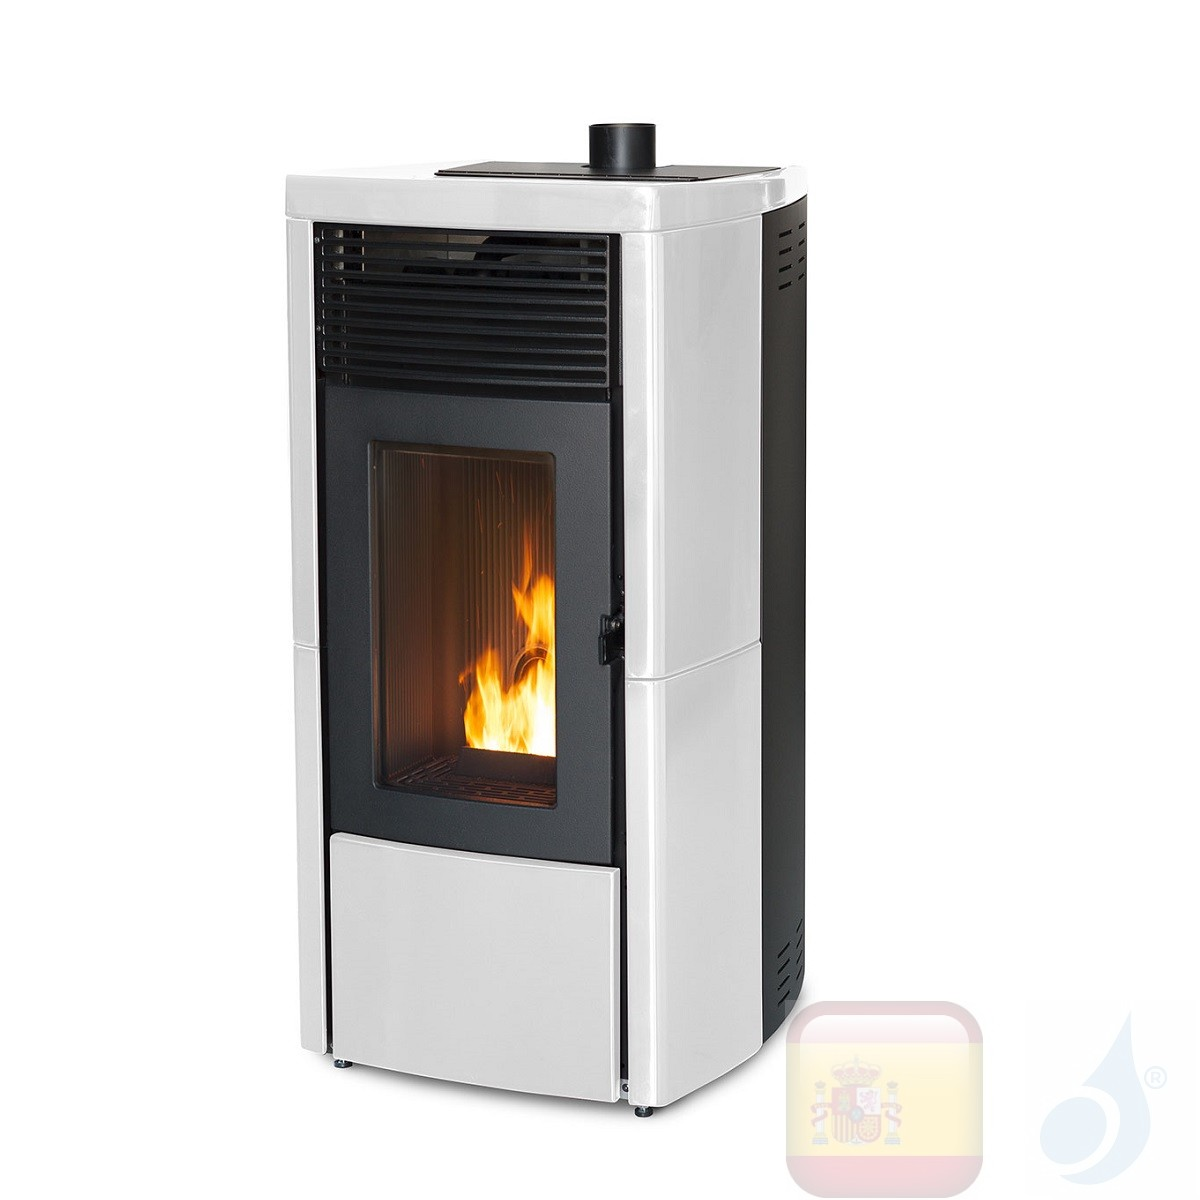 Estufa de pellets MCZ 10.0 kW Star Comfort Air 10 UP! M1 Blanco